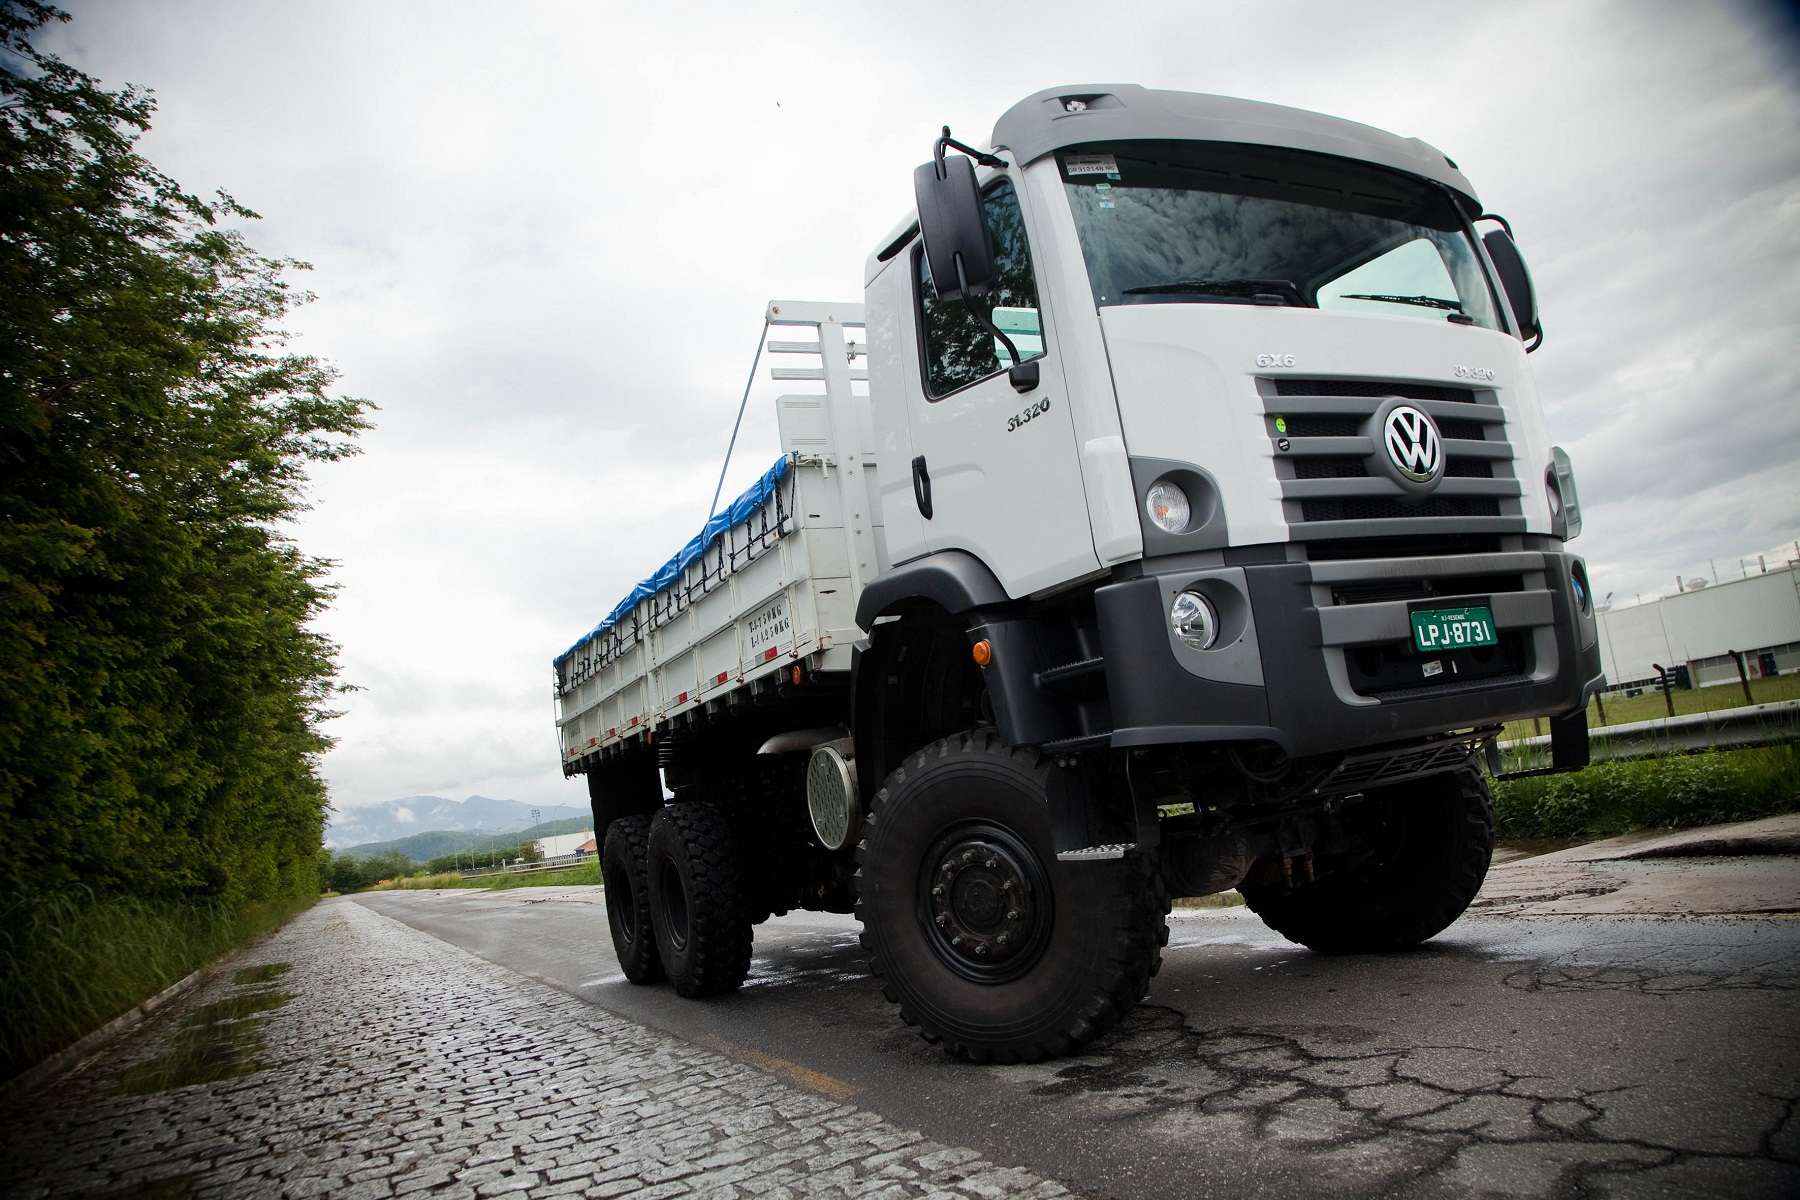 VW-Constellation-31.320-6x6-Militar.jpg